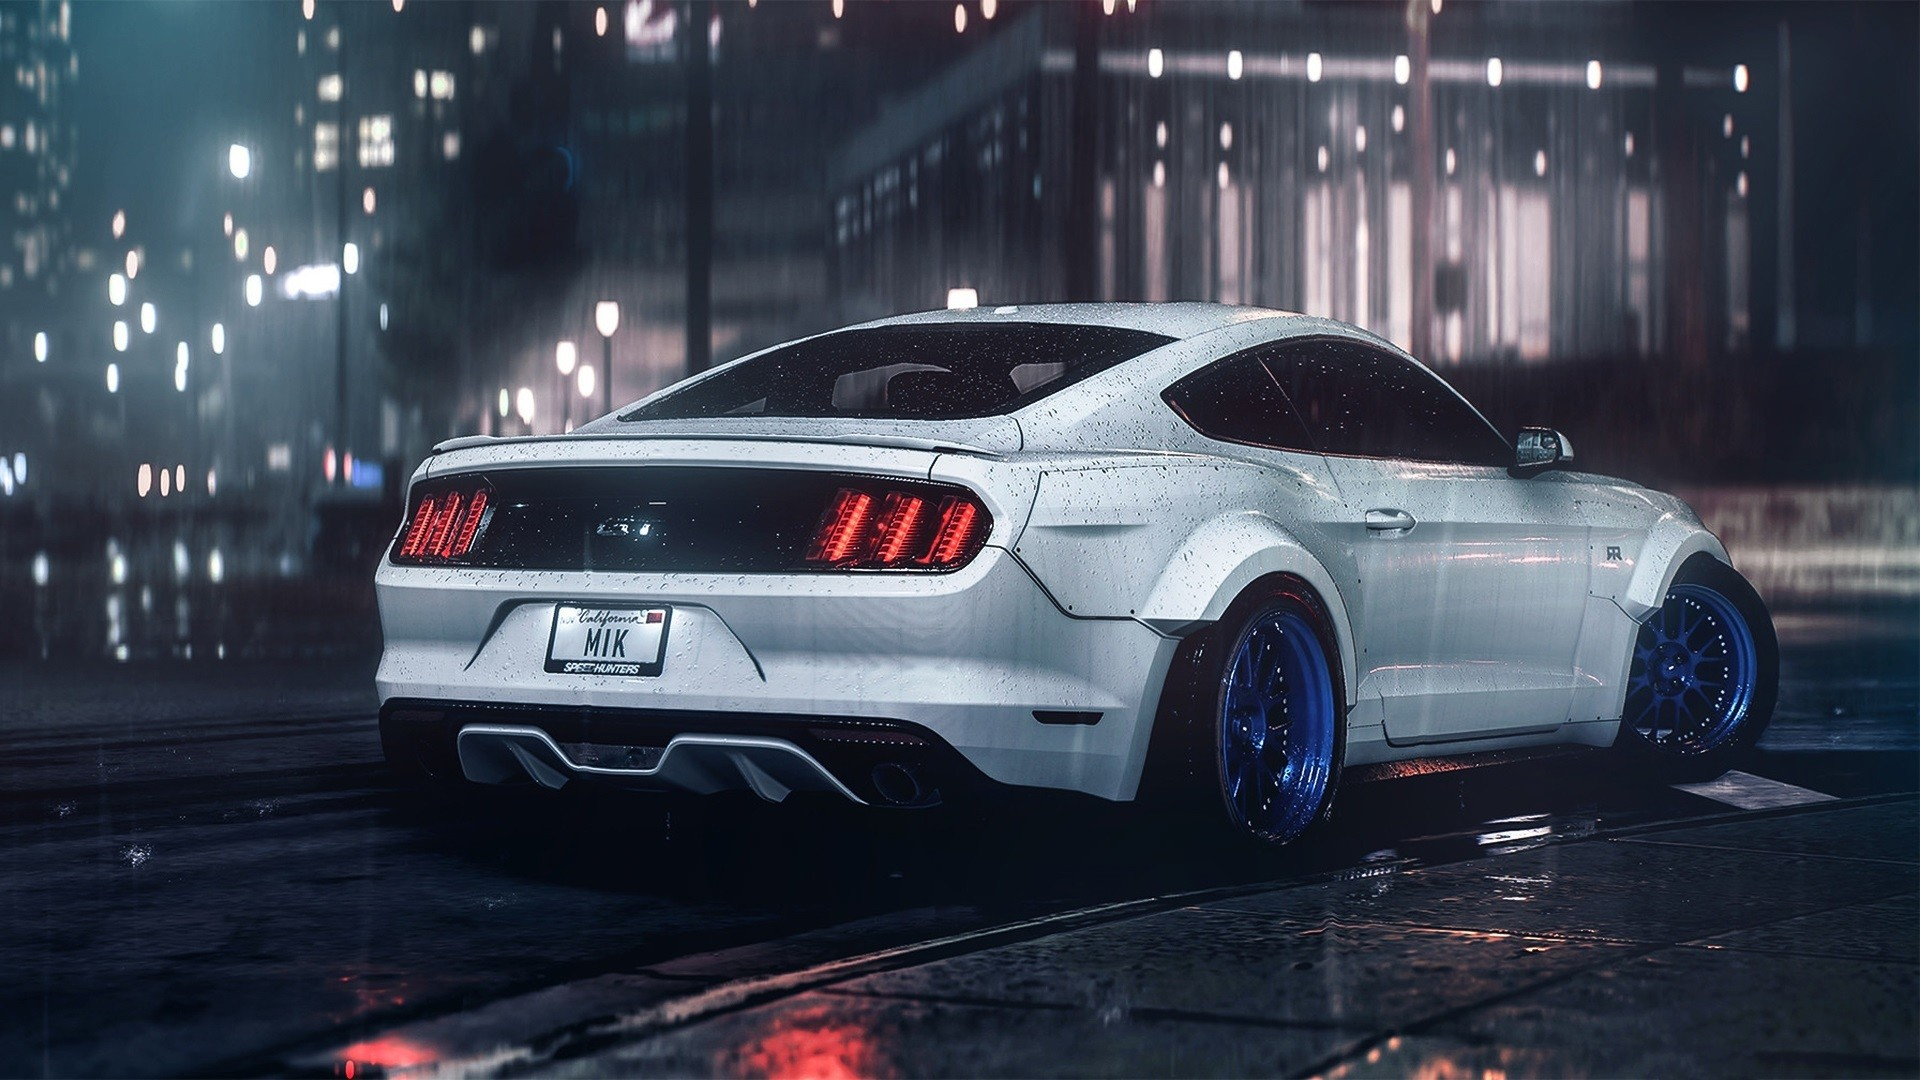 Ford Mustang Gt Wallpaper 1920x1080 Supercars Gallery